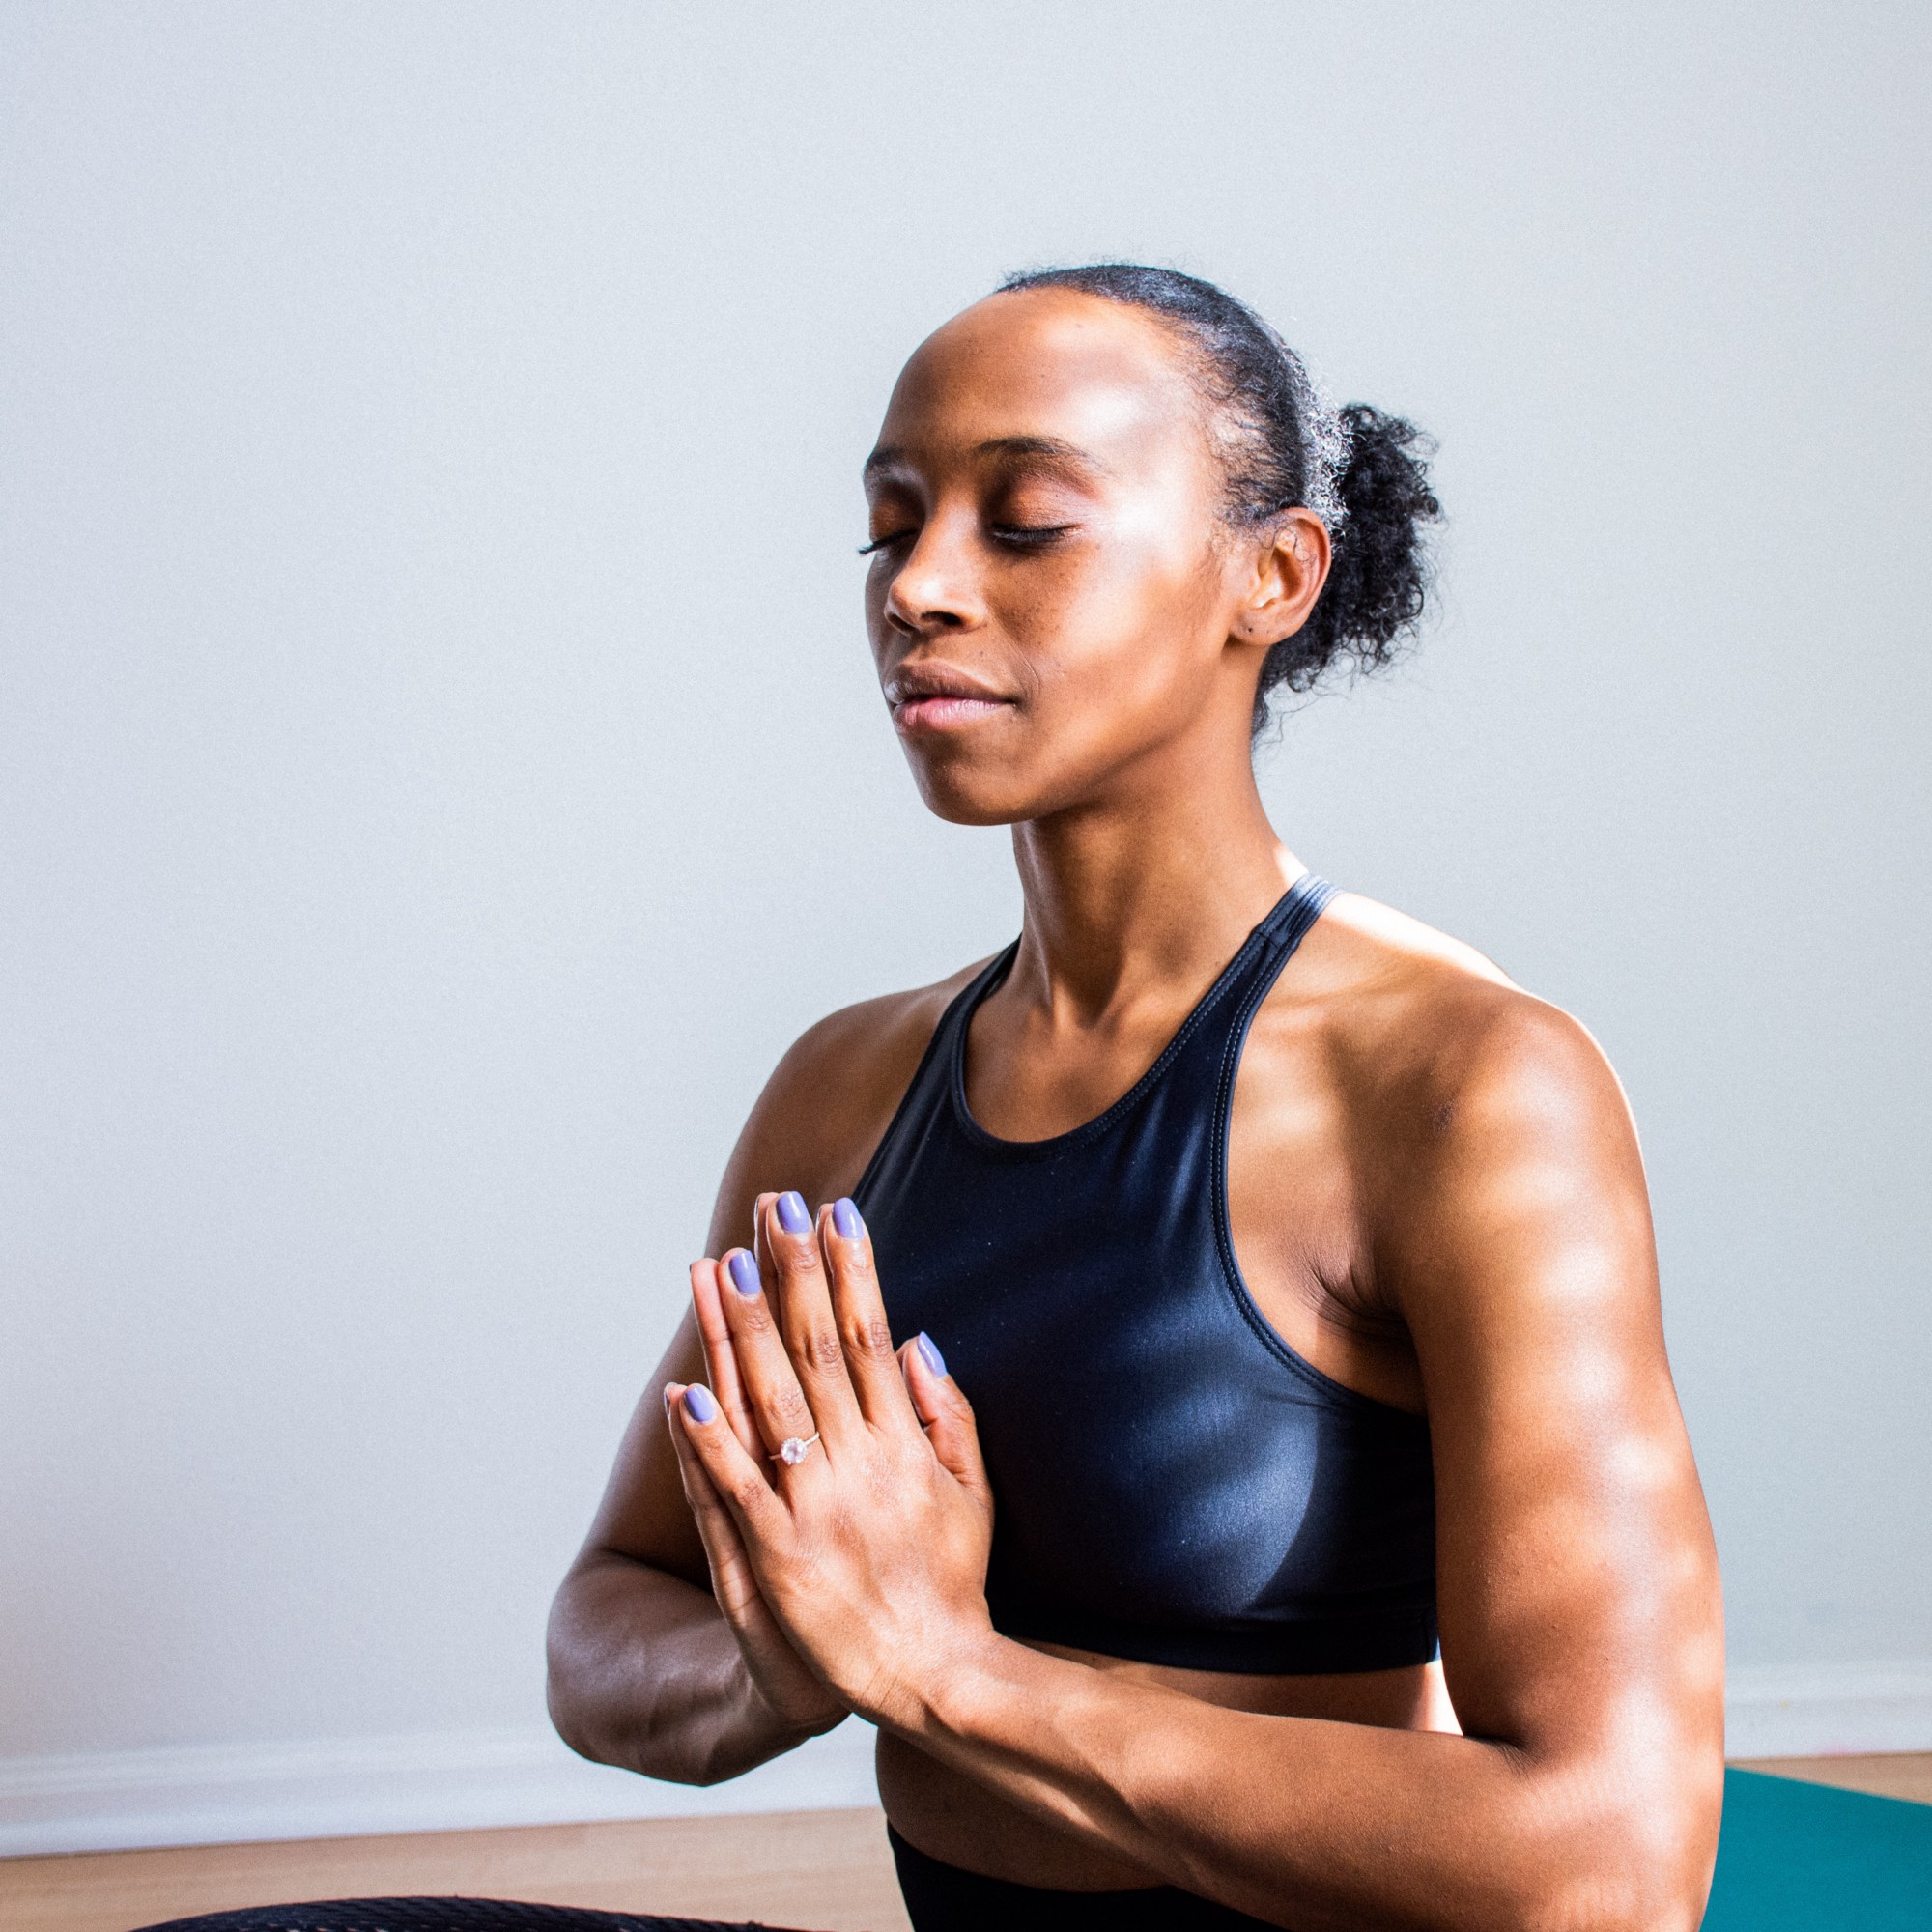 Woman sitting cross legged, meditating, with palms together, fingers pointing upwards, in front of chest.